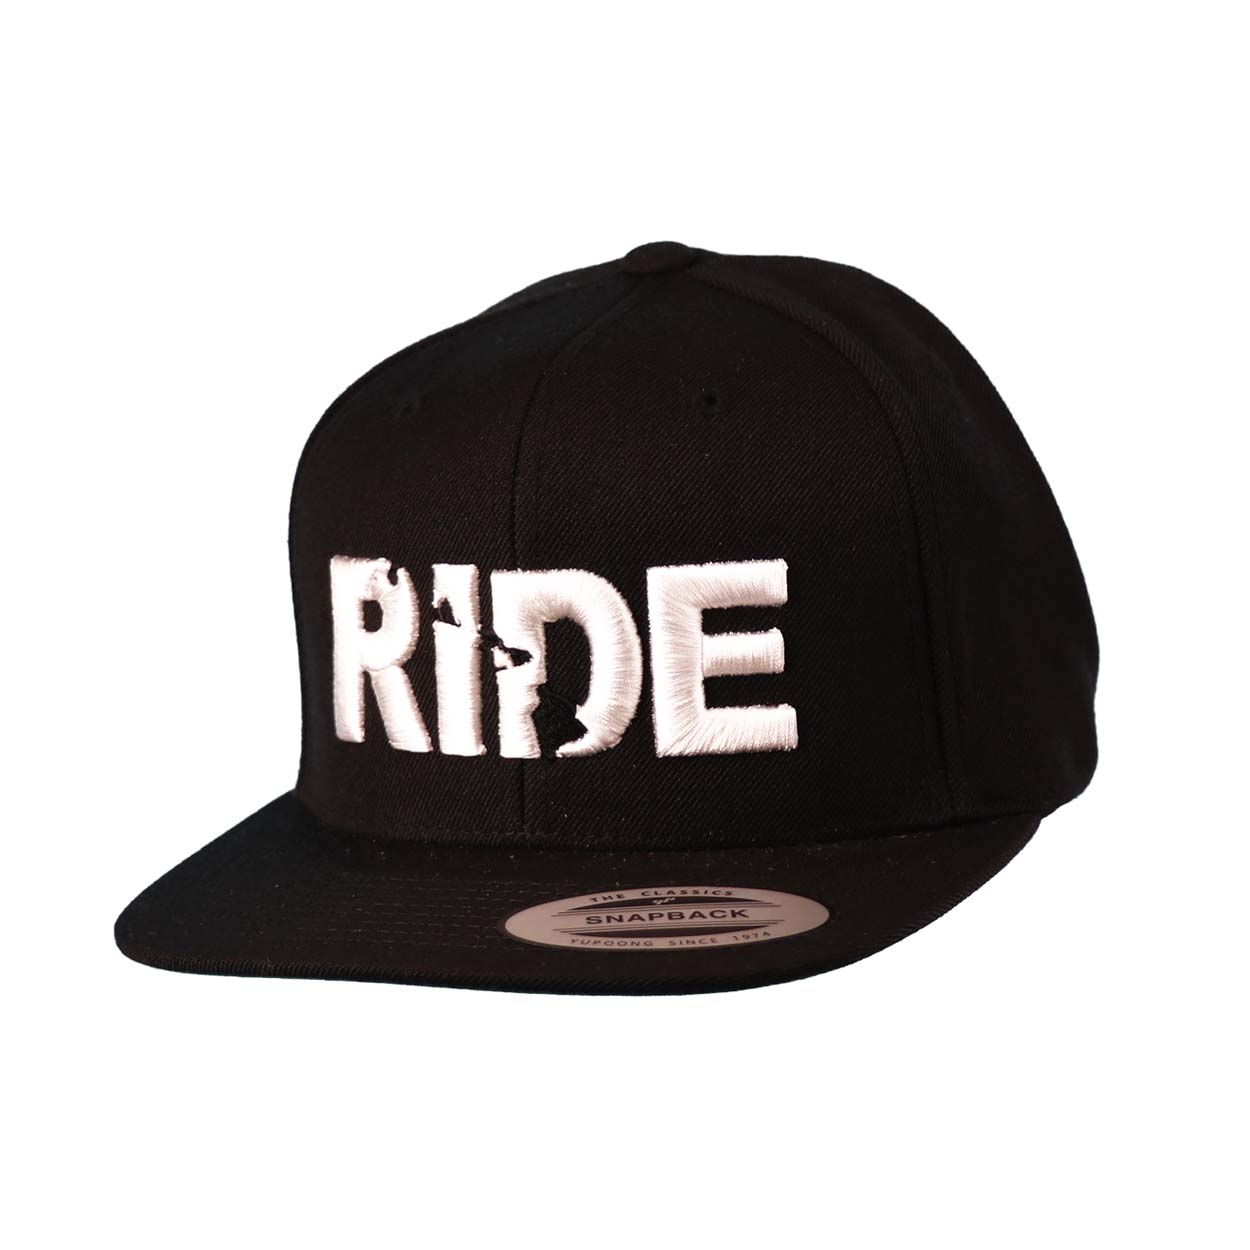 Ride Hawaii Classic Embroidered  Snapback Flat Brim Hat Black/White